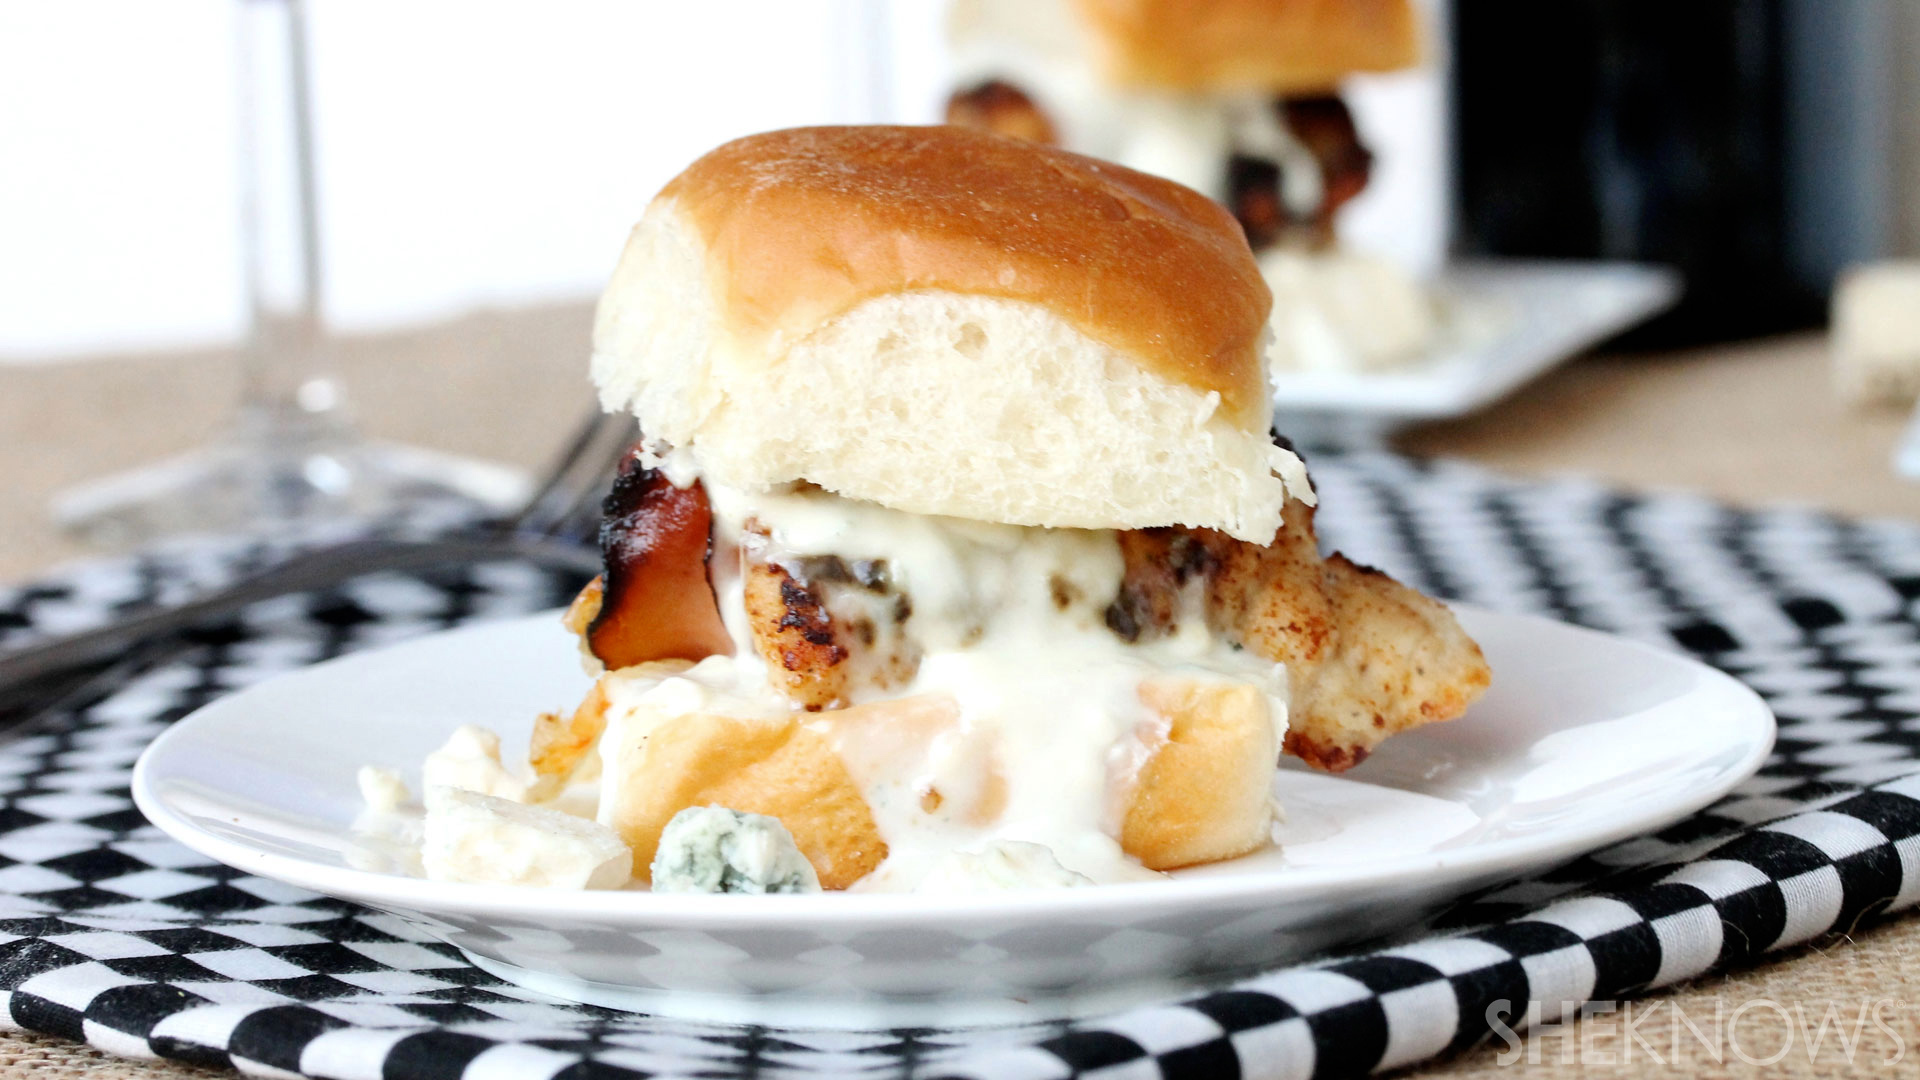 Cordon bleu chicken sliders with blue cheese sauce recipe